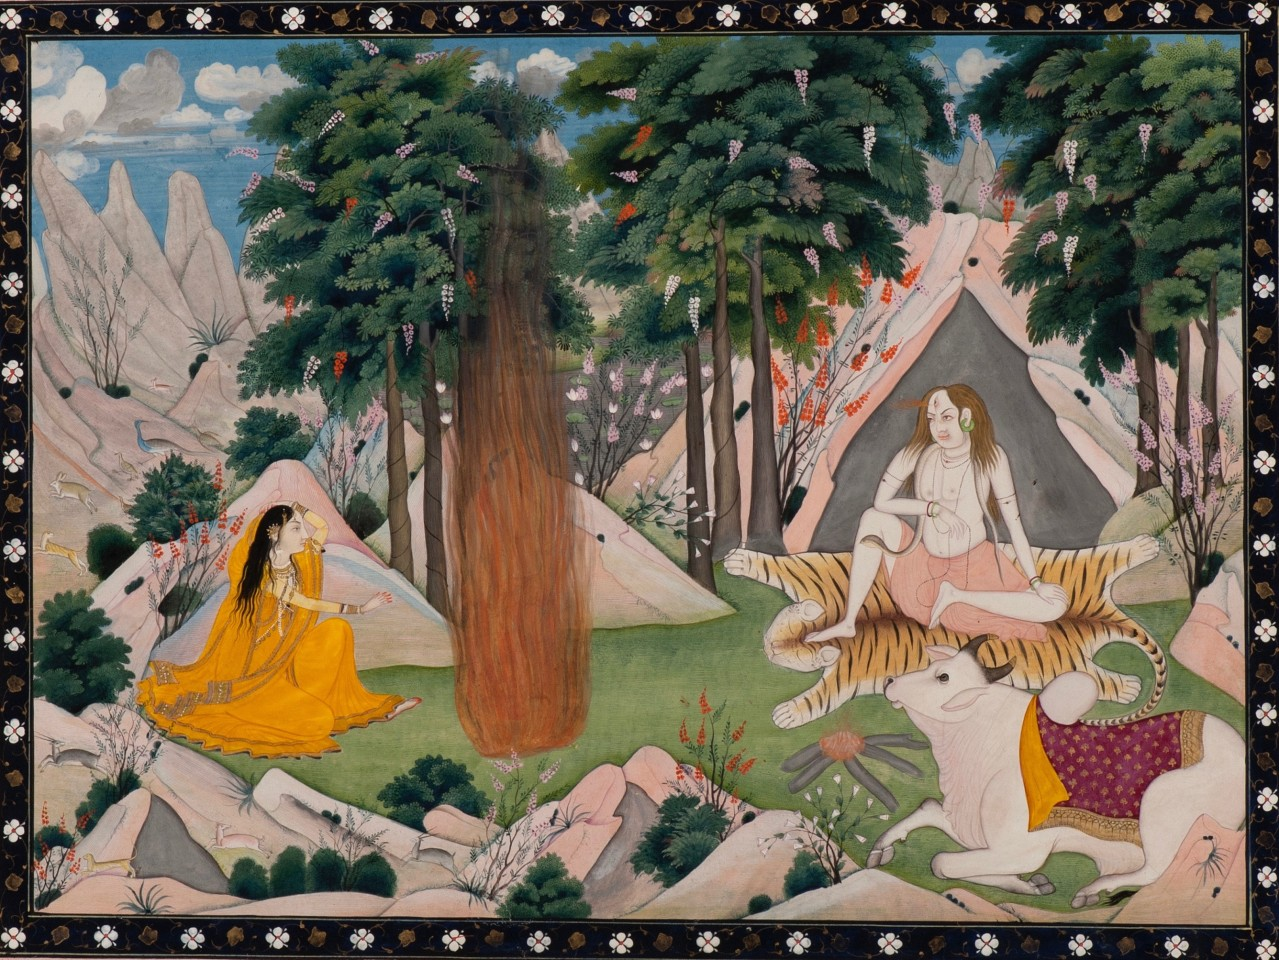 Shiva Kills Kama for Disturbing his Meditation